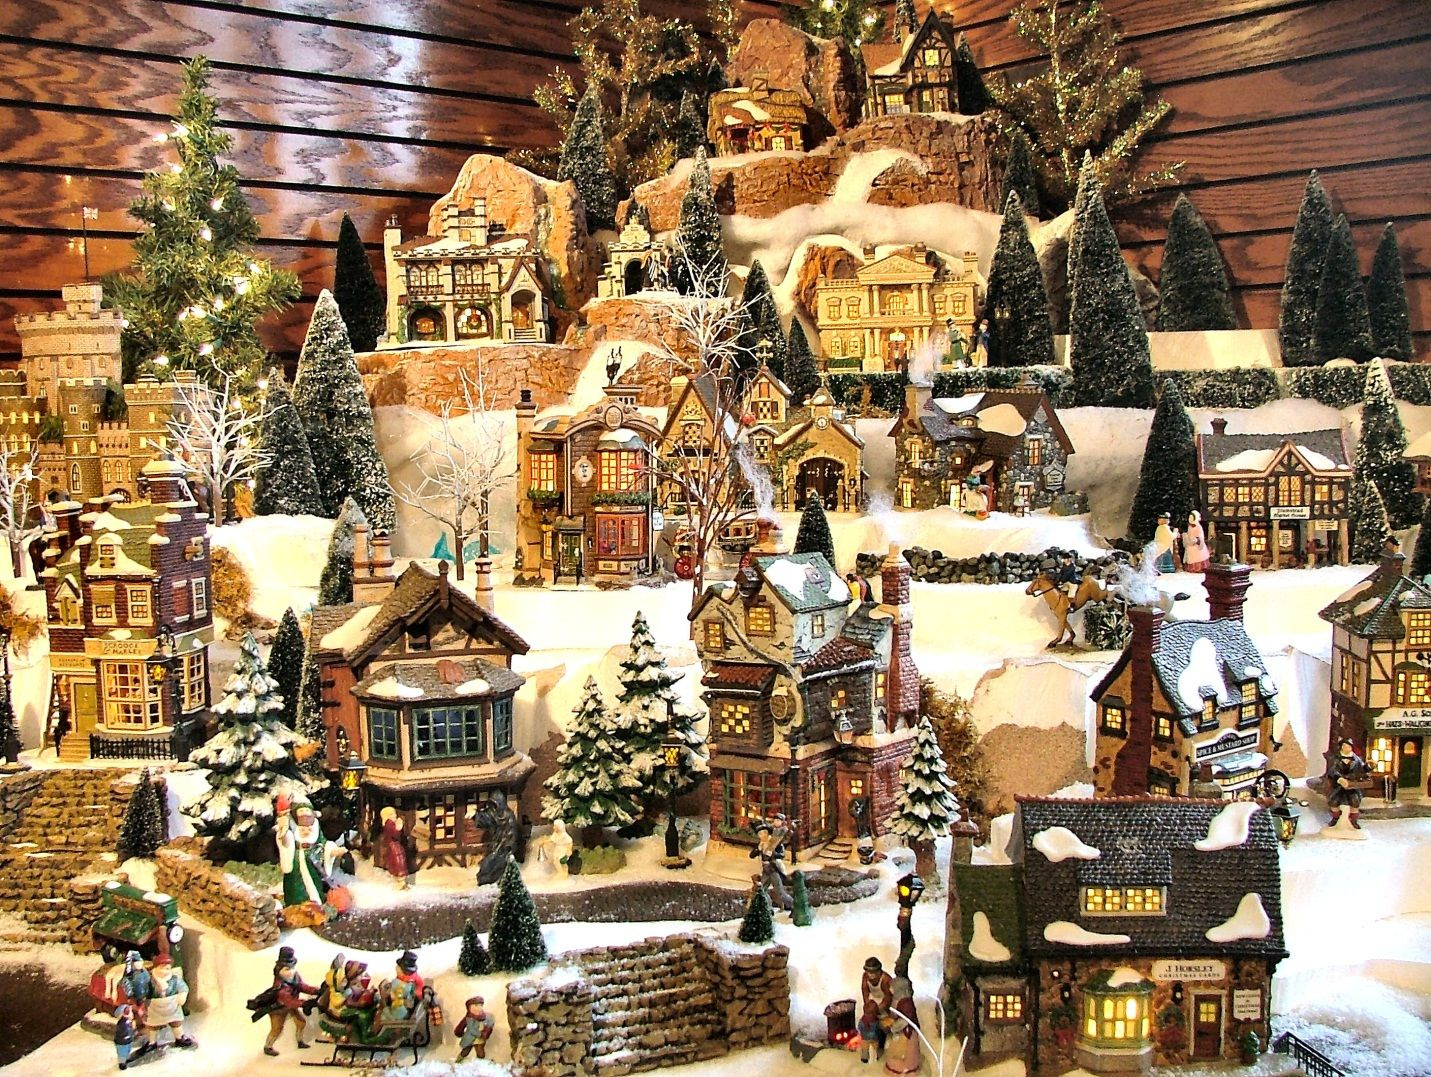 17 Stunning Christmas Village Miniature Christmas Village Display Lemax Christmas Village Christmas Village Collections